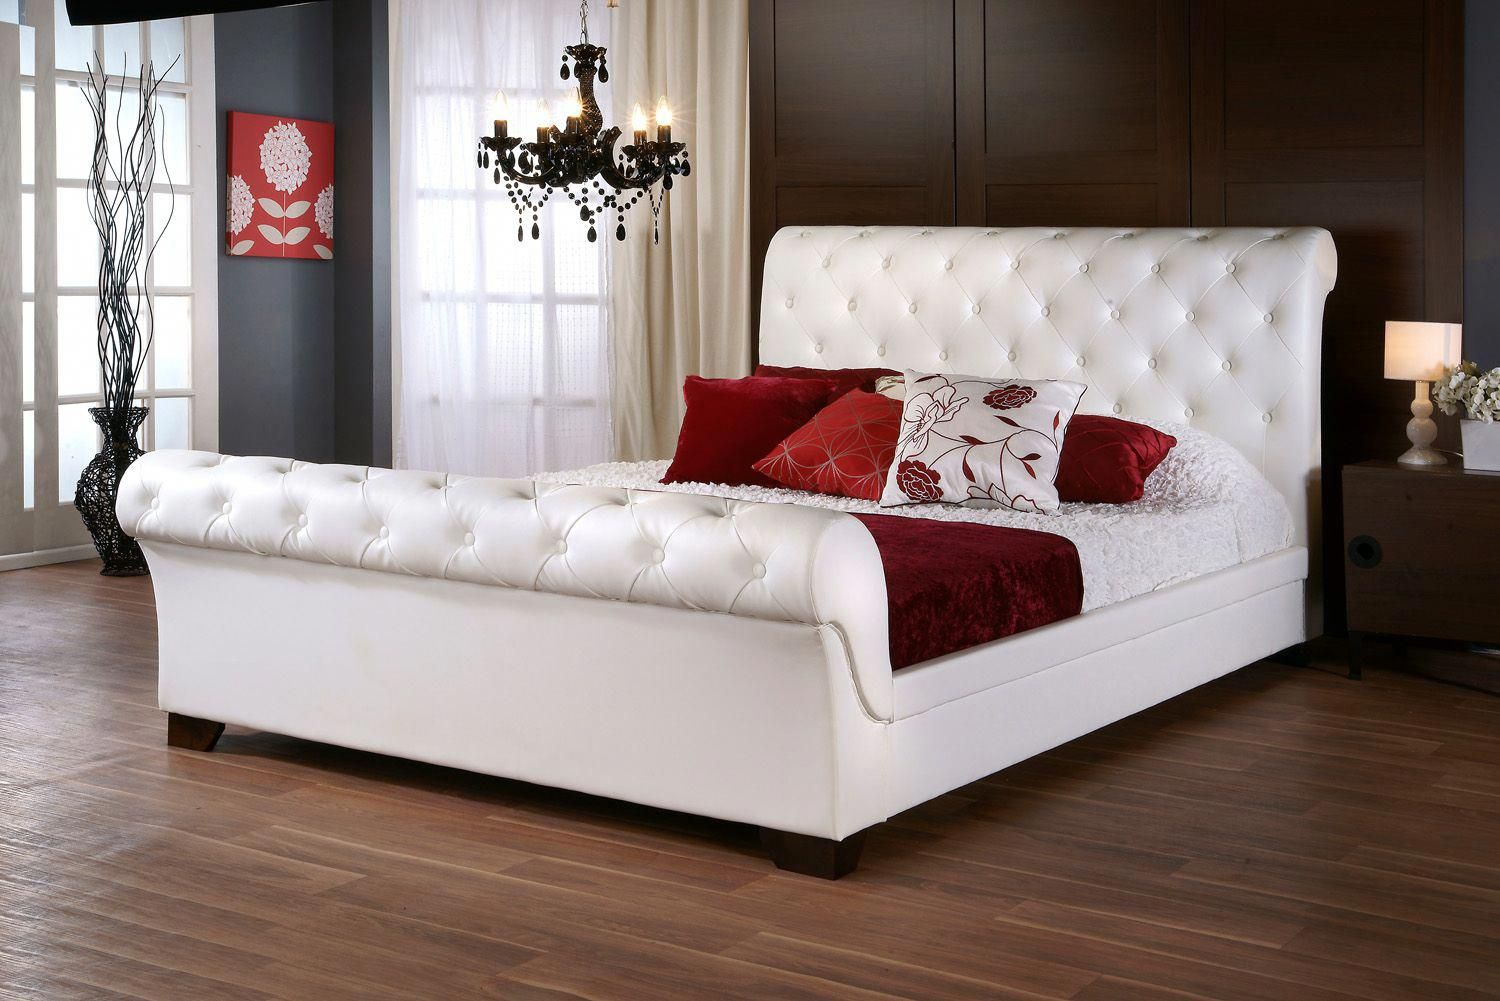 6ft Chesterfield White Faux Leather Bed Frame 749 95 Limited